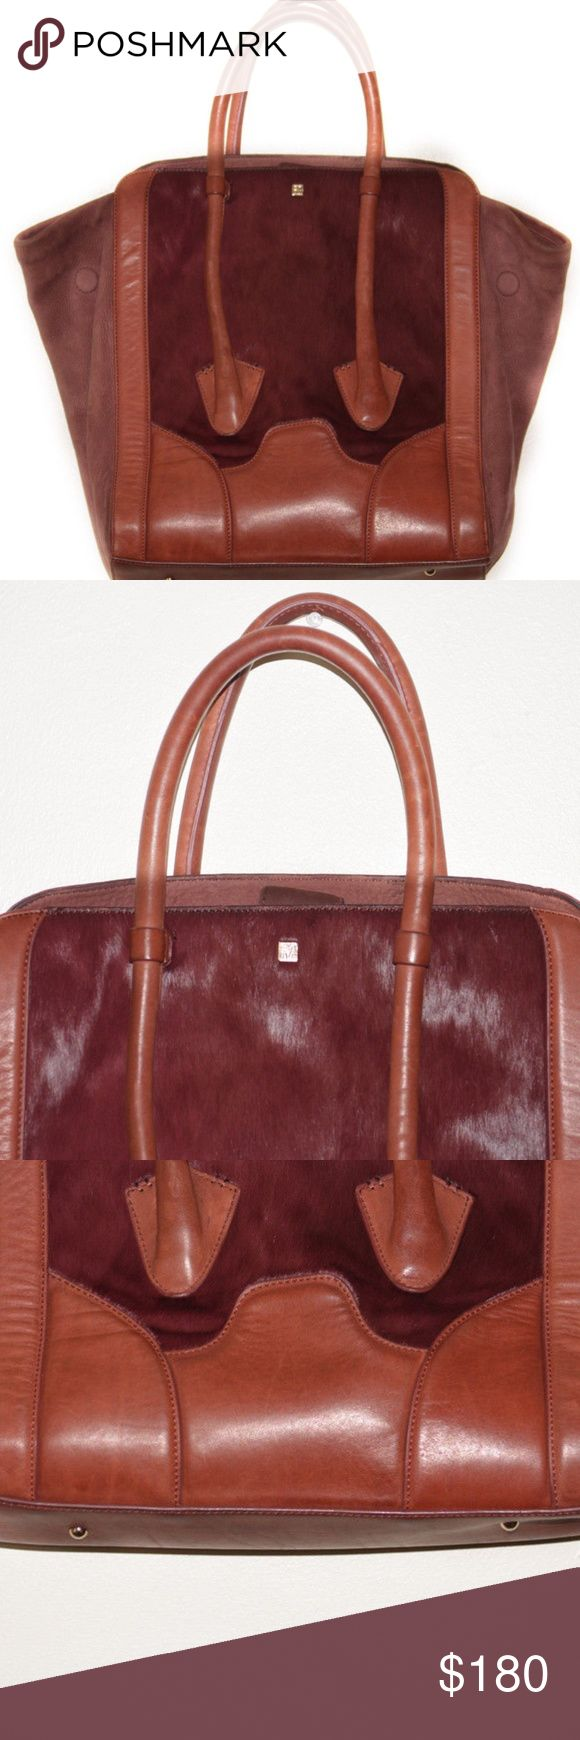 Pour La Victoire Burgundy Butler Tote Bag This is a Pour La Victoire Burgundy Butler Tote Bag. This item is gently used, has a very small scuff on part of the leather handle  Materials: Leather and Pony Hair  Please let me know if you have any questions! Pour la Victoire Bags Totes